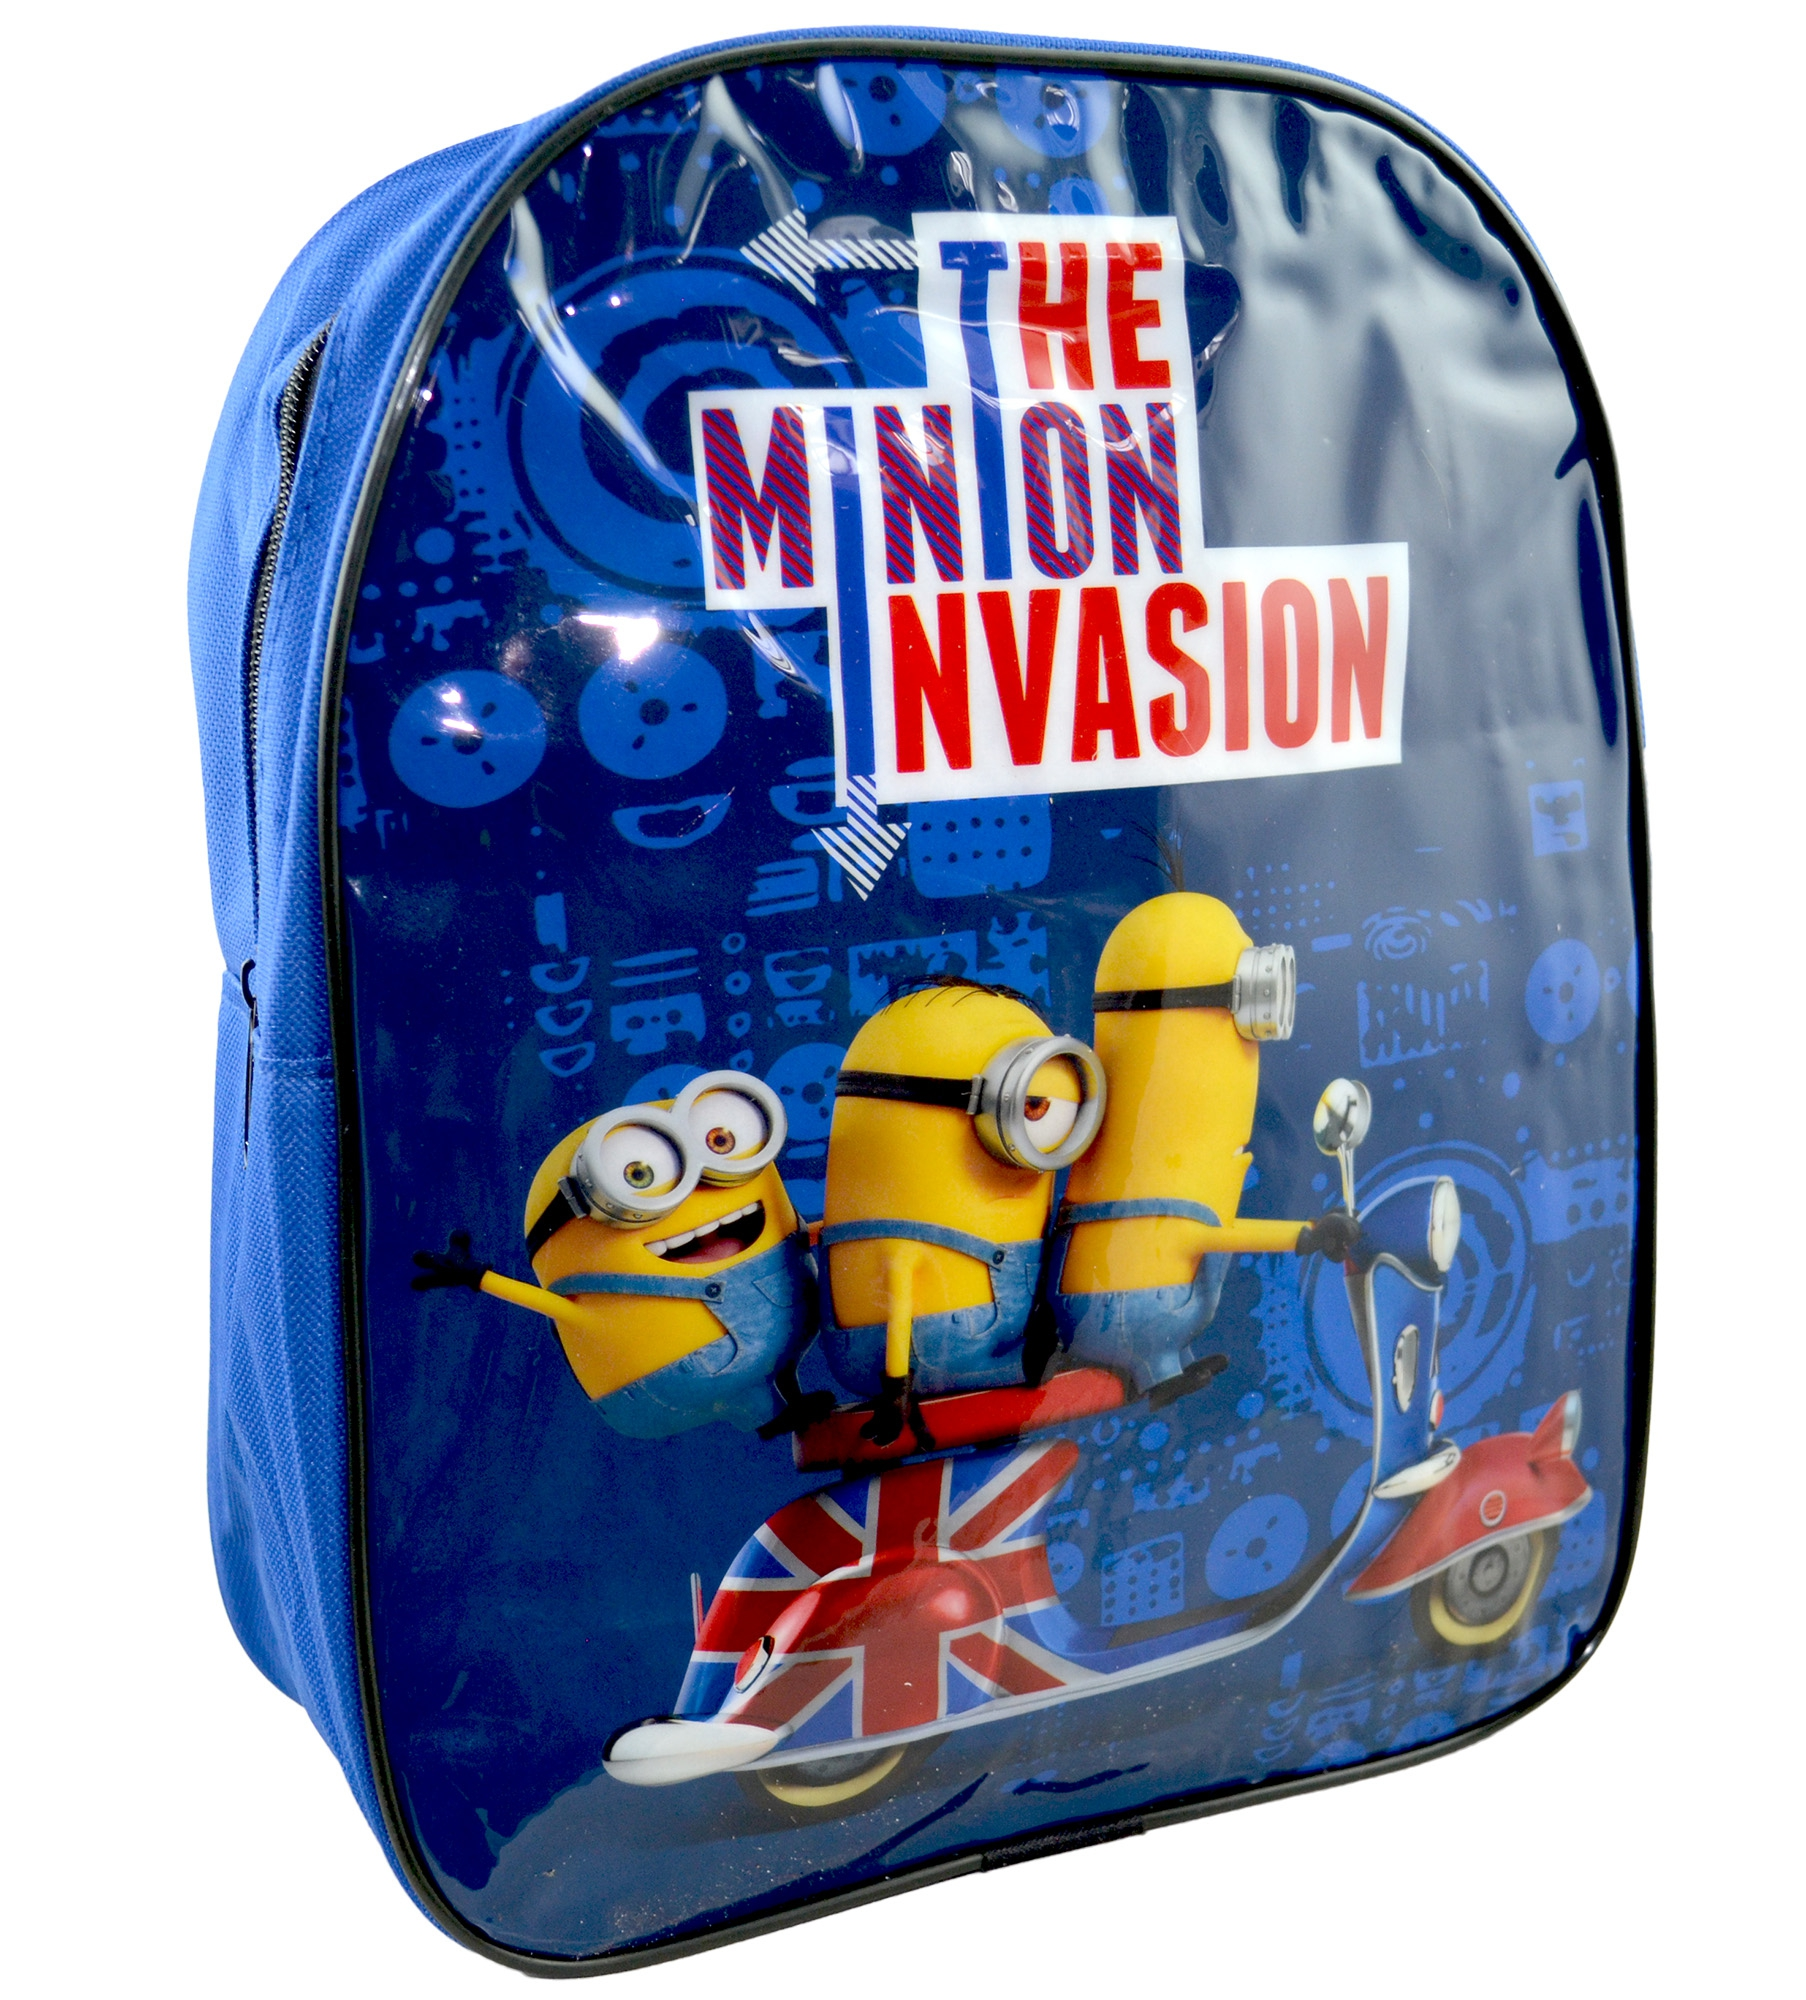 Despicable Me Minions 'Invasion' Junior School Bag Rucksack Backpack